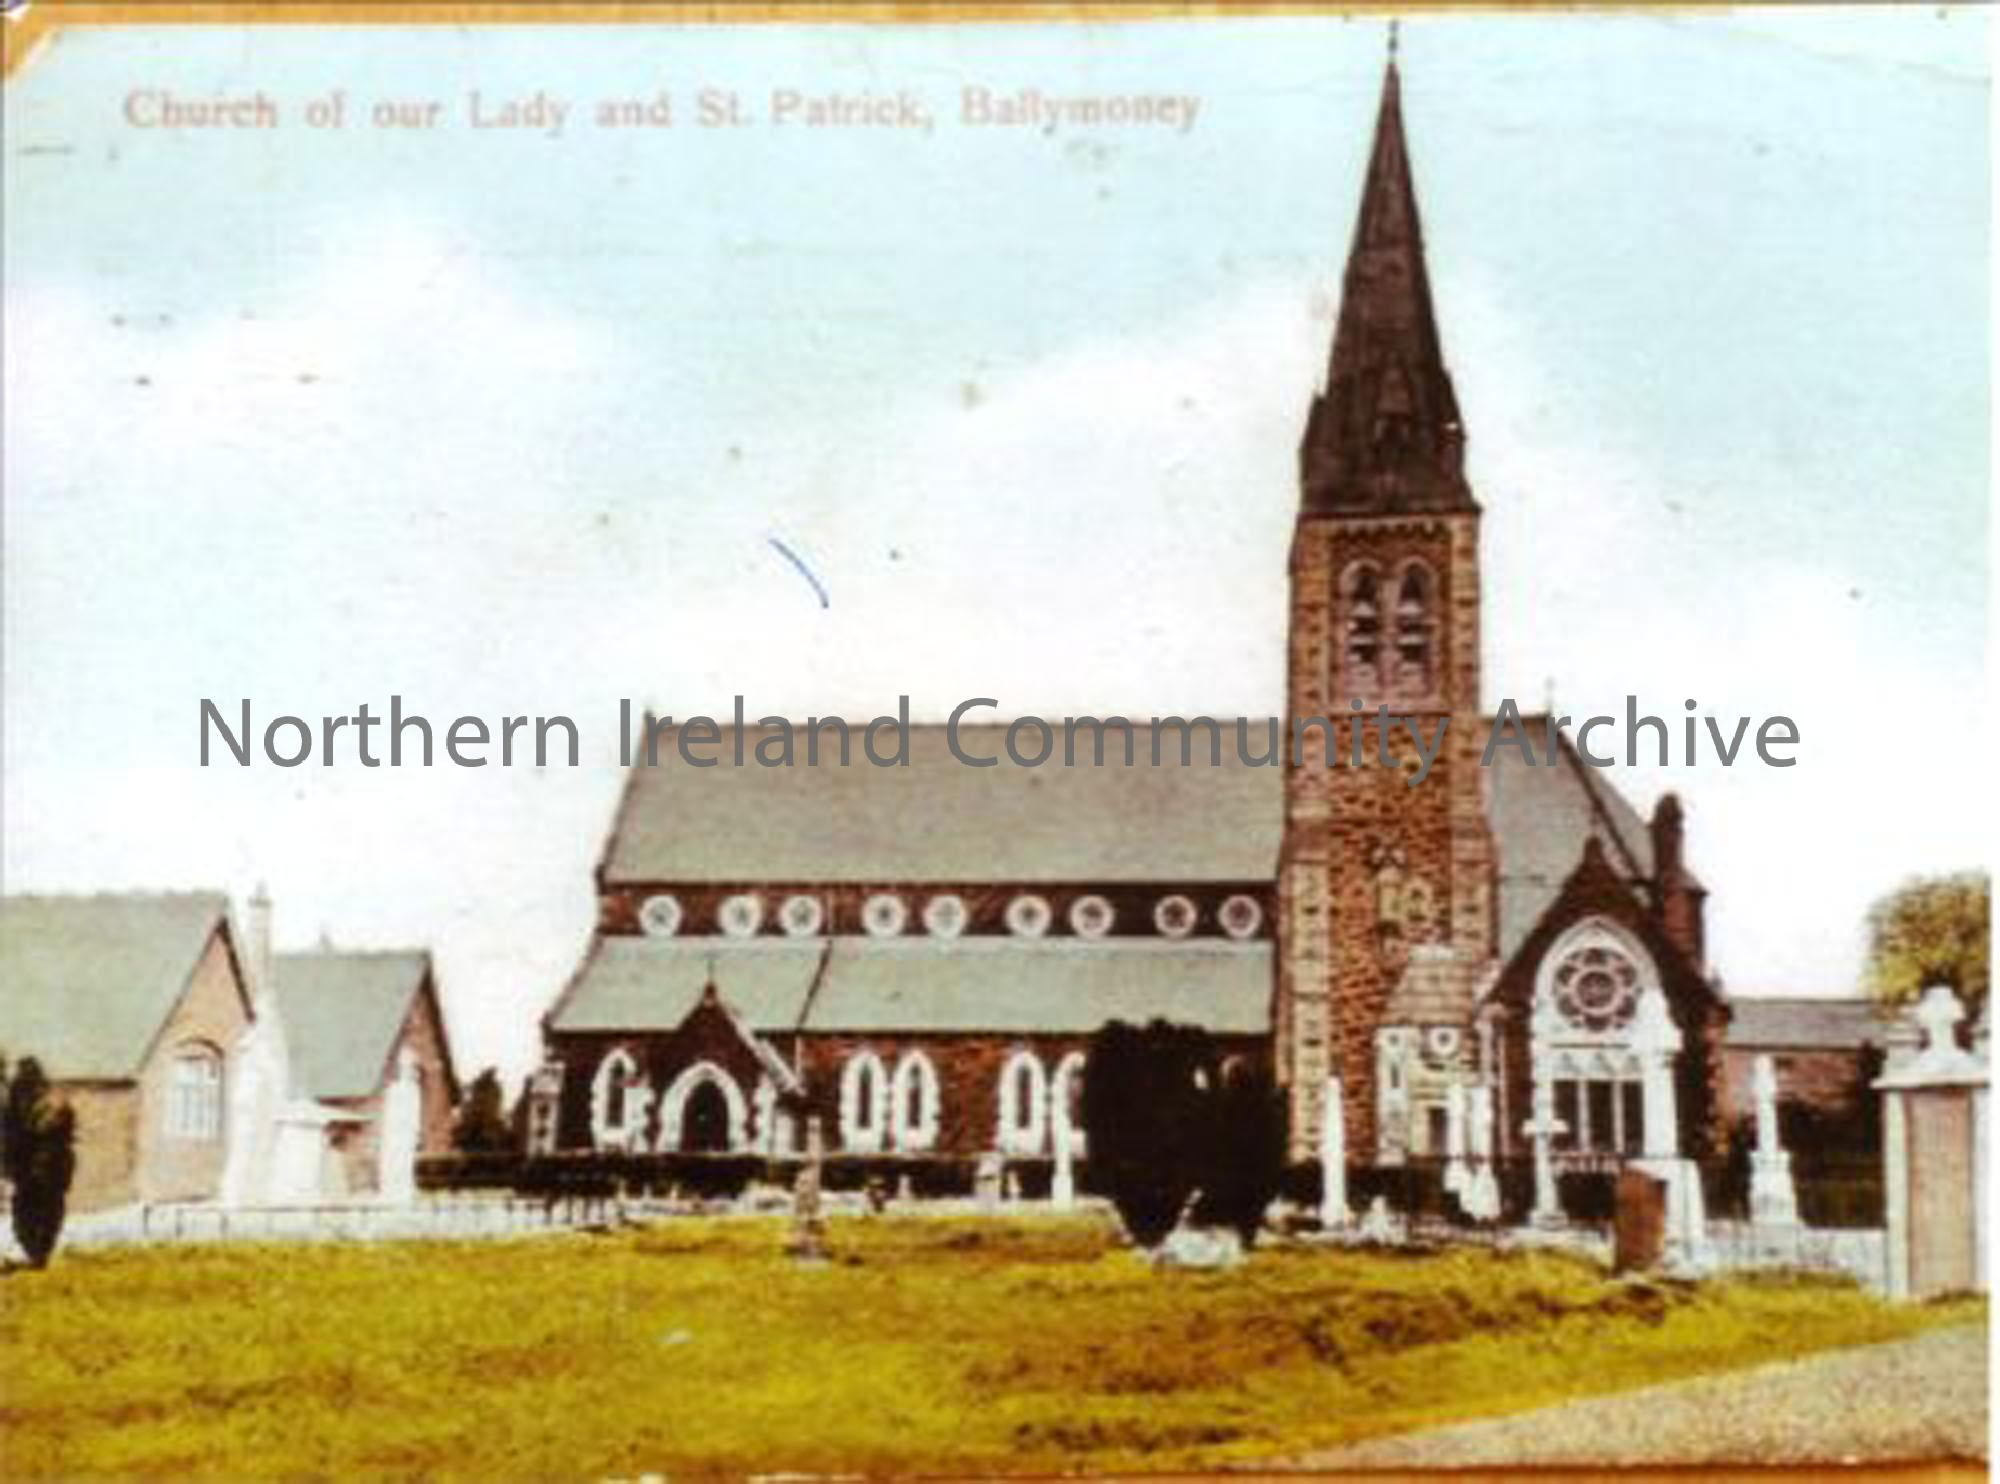 Church of Our Lady and St Patrick, Castle Street, Ballymoney (2664)